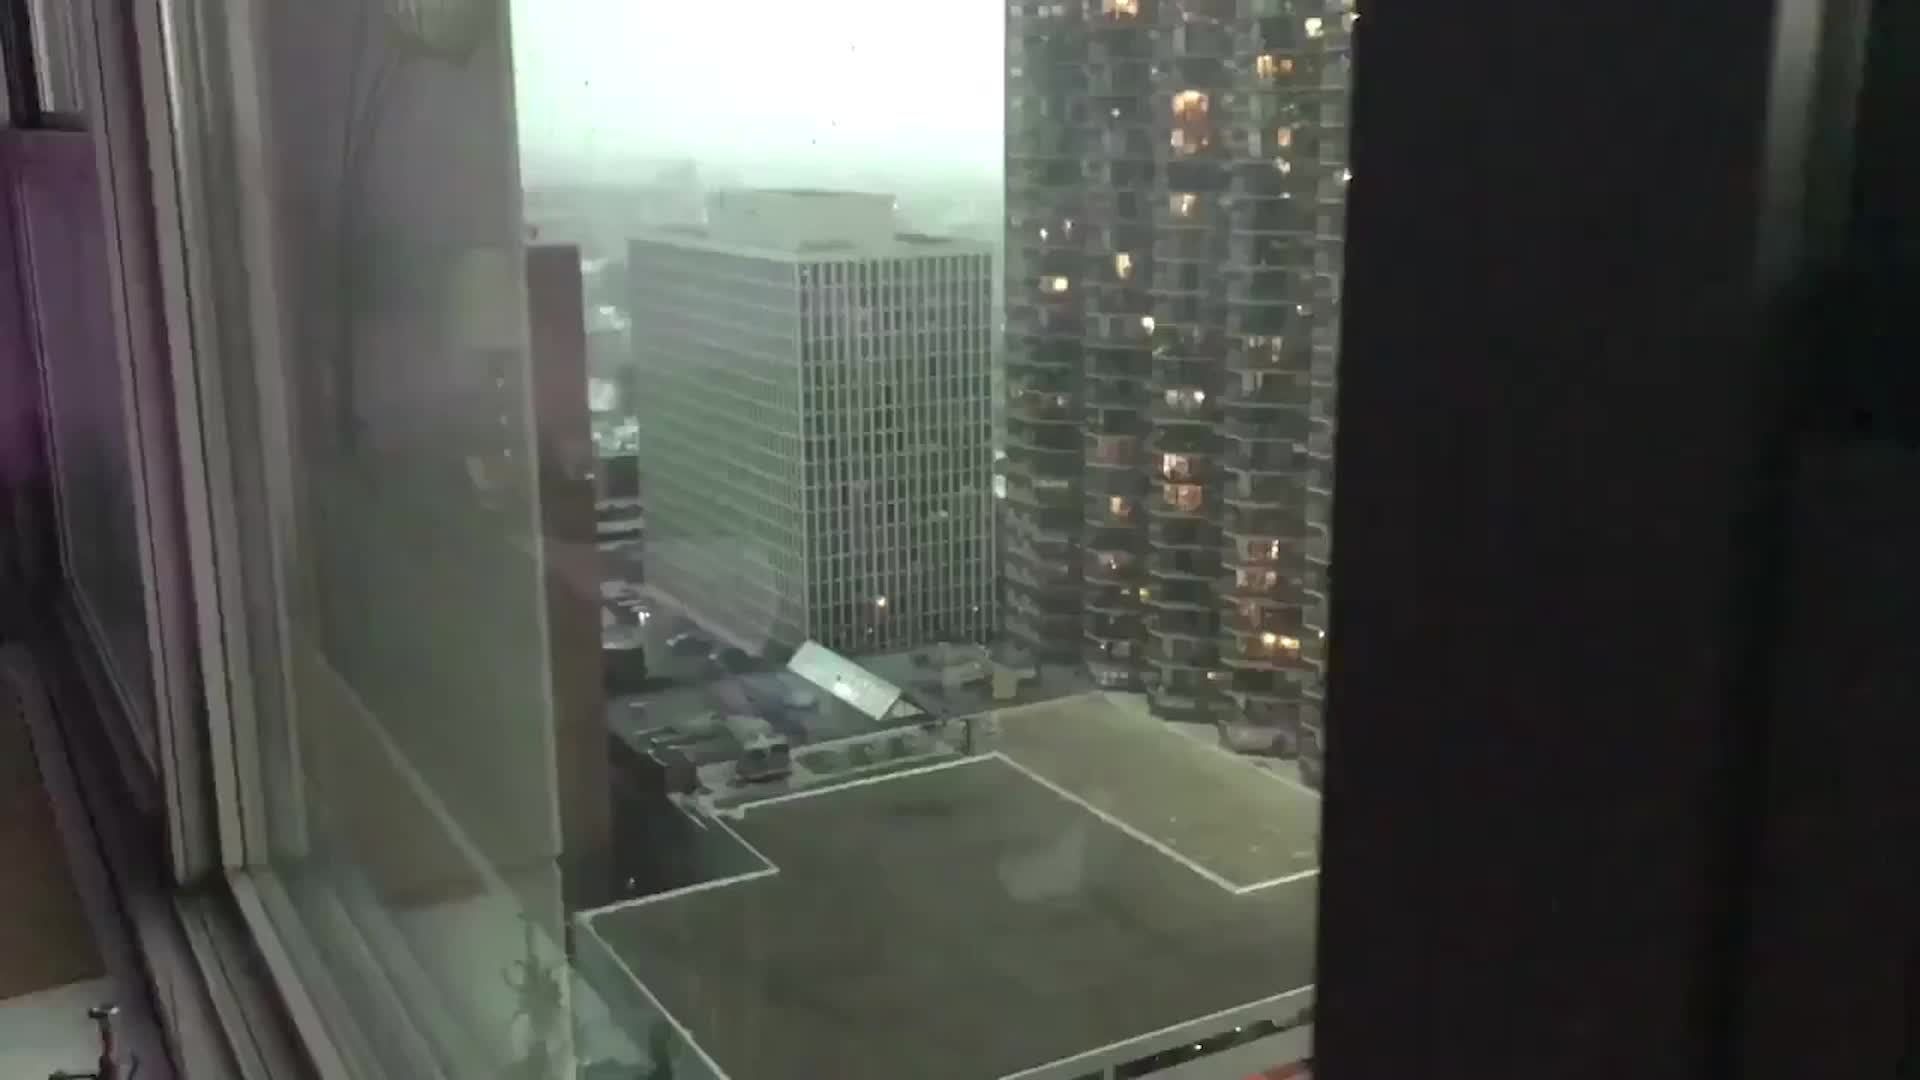 Shingles Fly Off Building on Chicago's Lake Shore Drive - Videos from The Weather Channel | weather.com